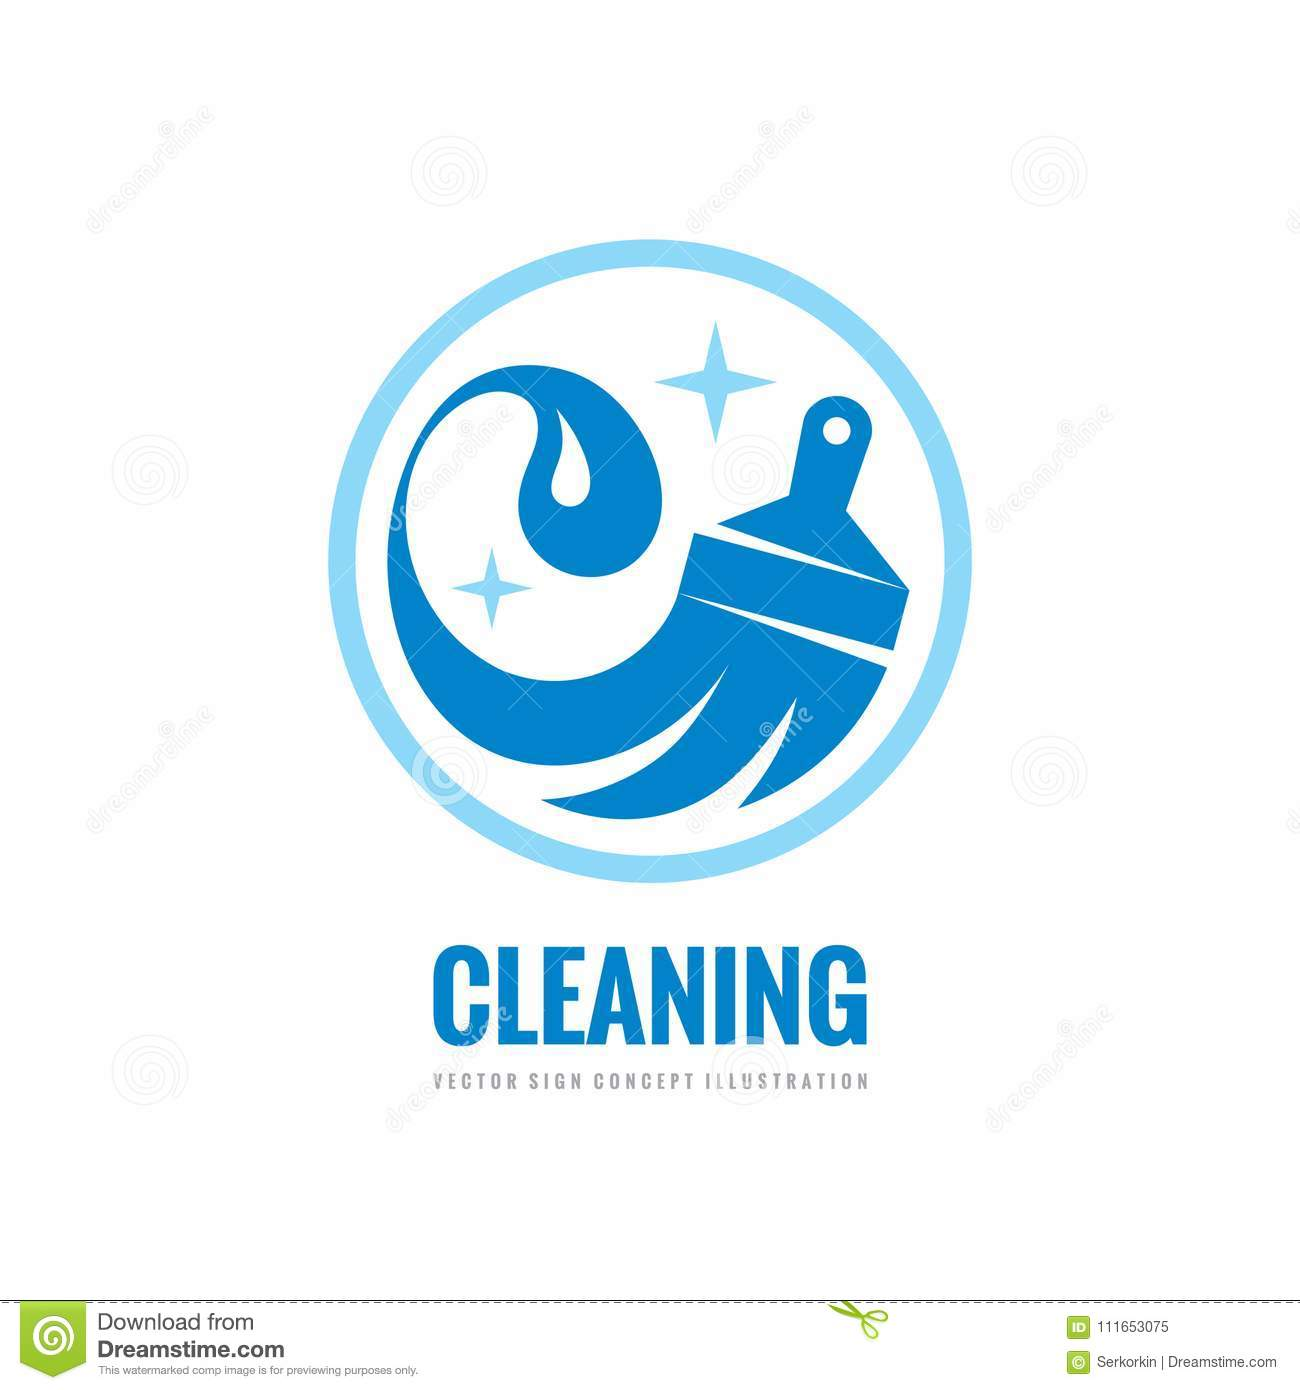 Cleaning service vector business logo template concept download cleaning service vector business logo template concept illustration wash household sign graphic accmission Images